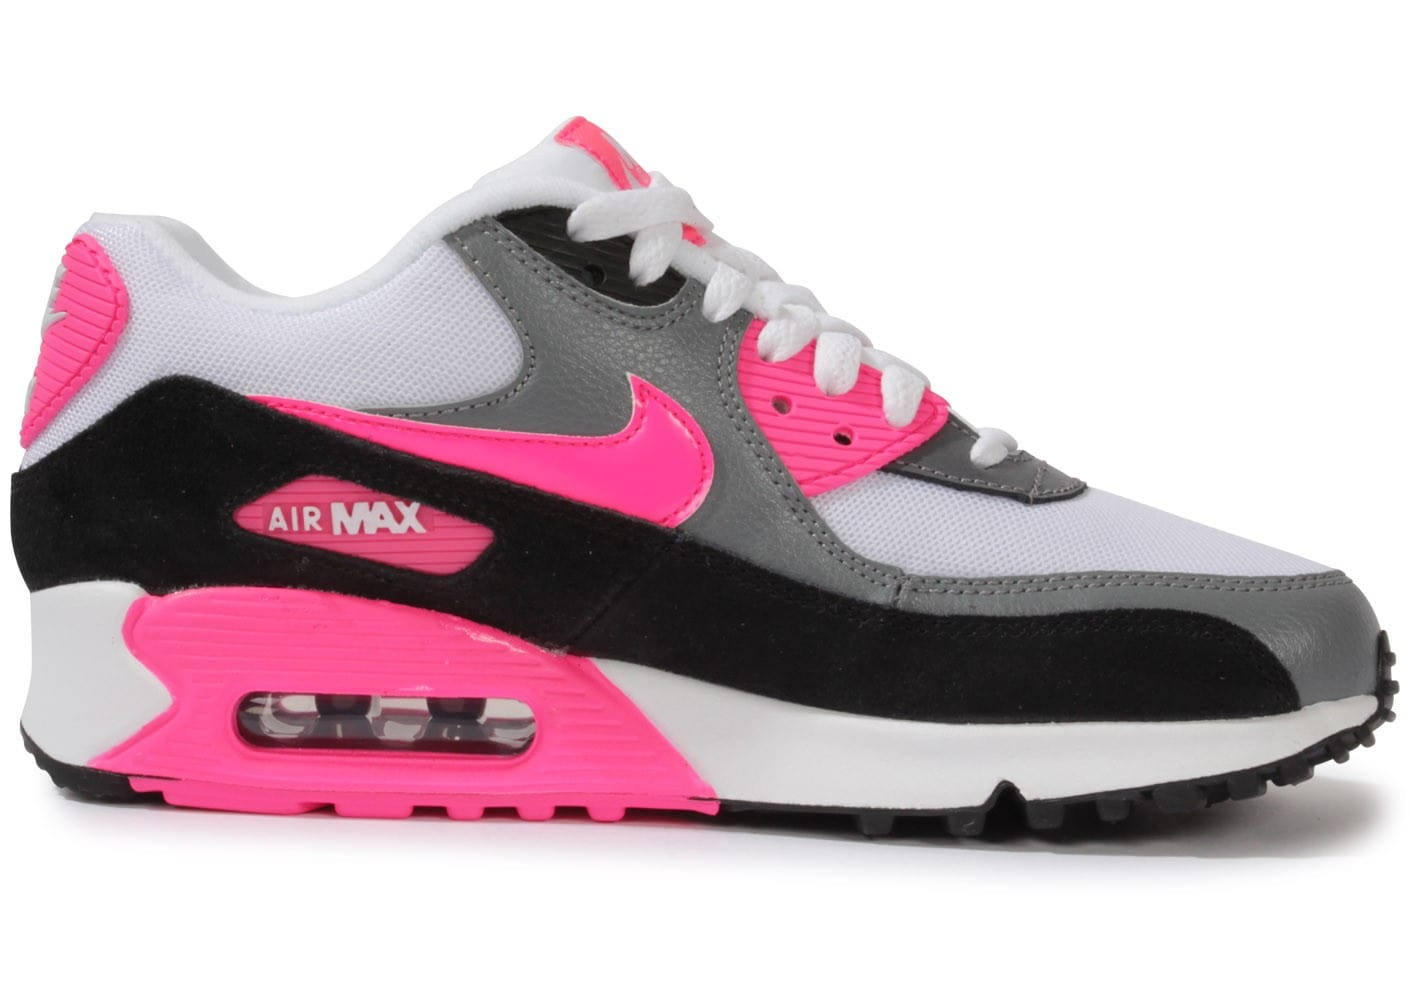 new product 3153e c0b18 Nike Air Max 90 Essential Blanche Rose - Chaussures .